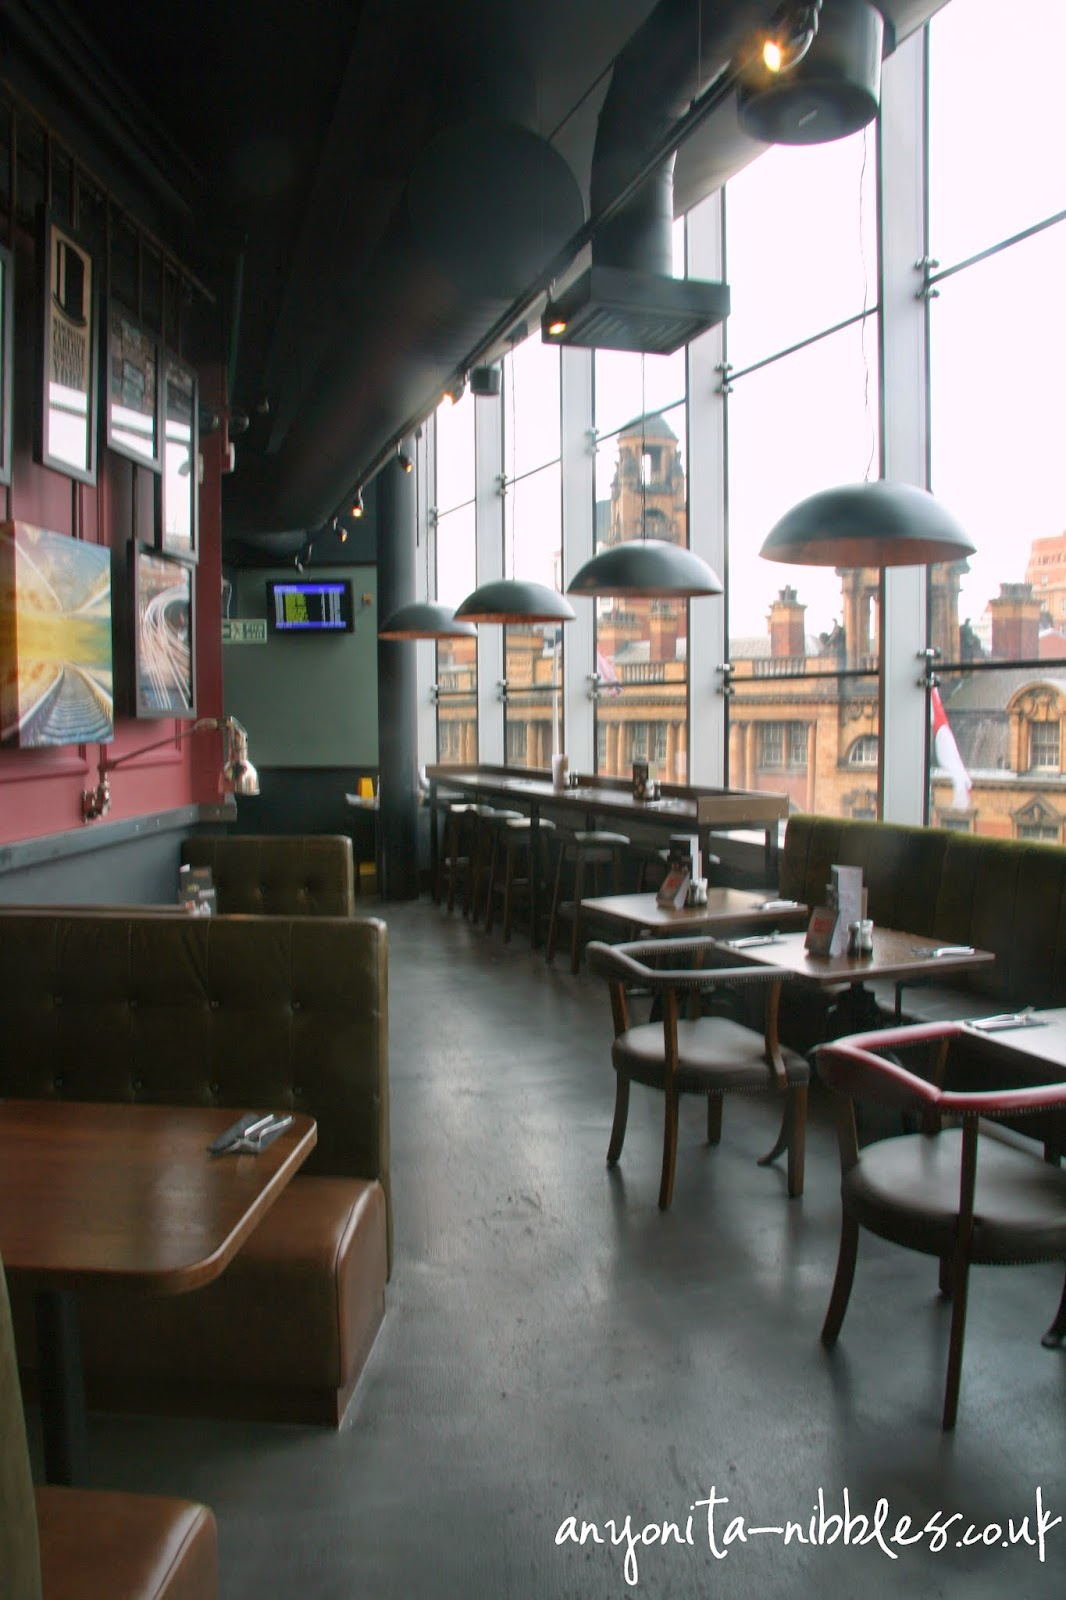 Keep an eye on your train time at Manchester Piccadilly's TGI Friday's | Anyonita-nibbles.co.uk